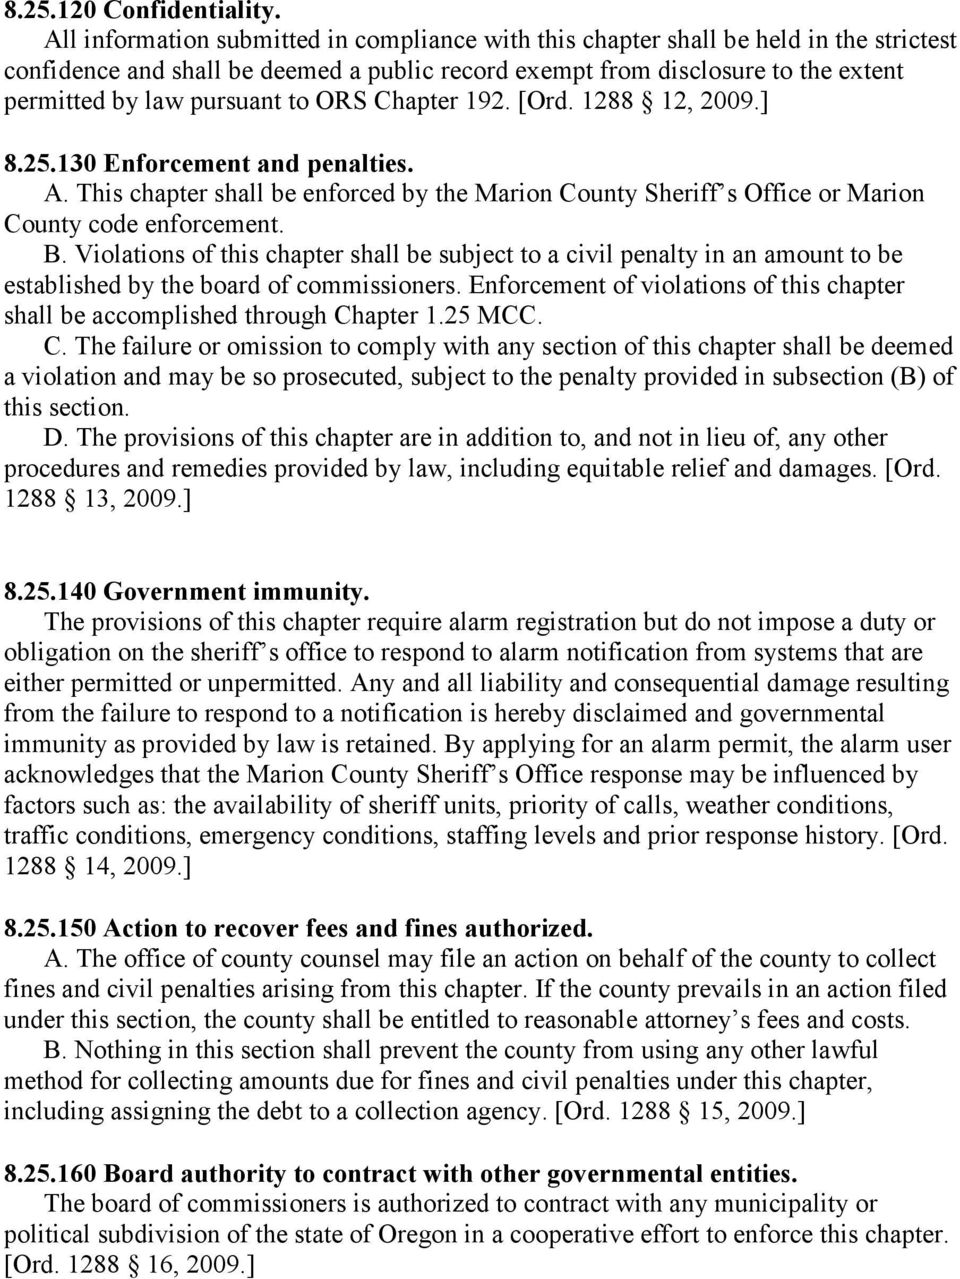 to ORS Chapter 192. [Ord. 1288 12, 2009.] 8.25.130 Enforcement and penalties. A. This chapter shall be enforced by the Marion County Sheriff s Office or Marion County code enforcement. B.